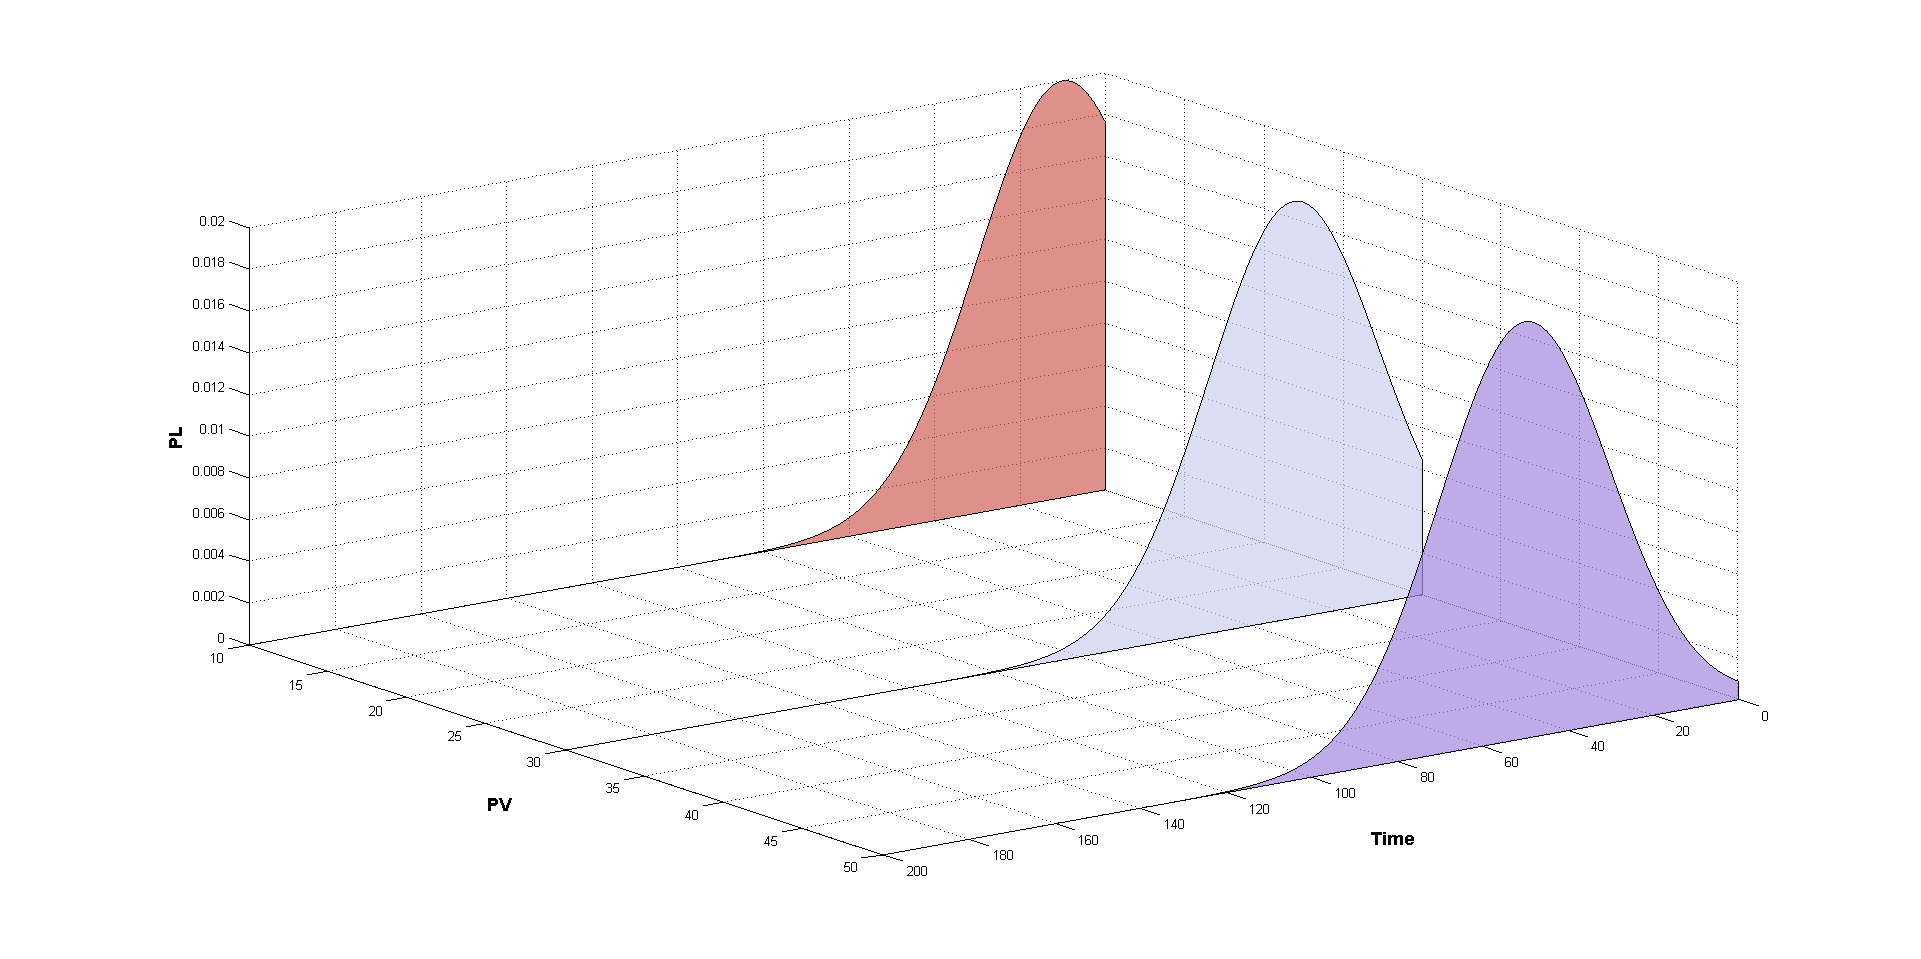 How to change colour in waterfall plot matlab answers matlab figure colordef white setgcf color 1 1 1 h waterfallxtyzerossizey seth facecolor flat seth edgecolor k seth ccuart Images